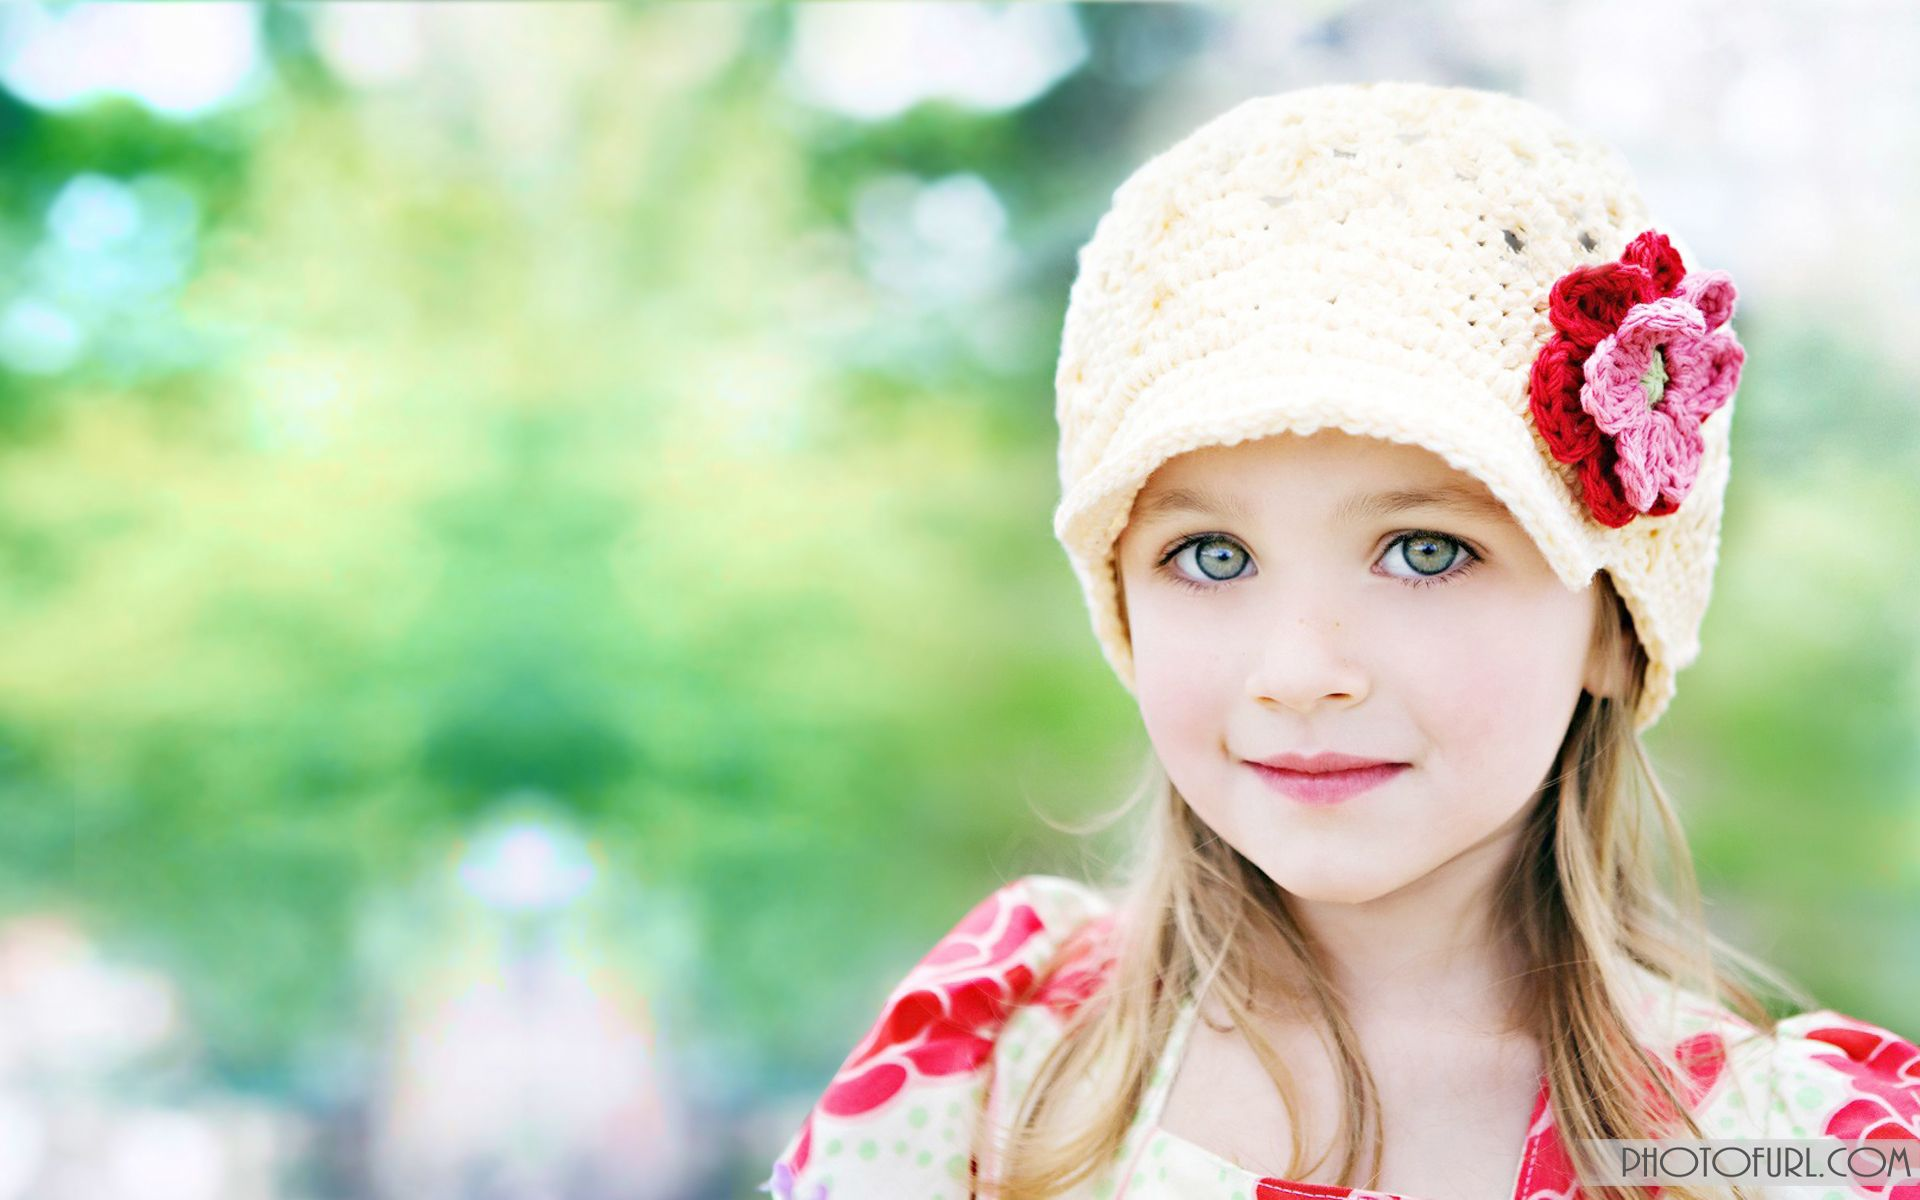 Cute Baby Images For Desktop Background